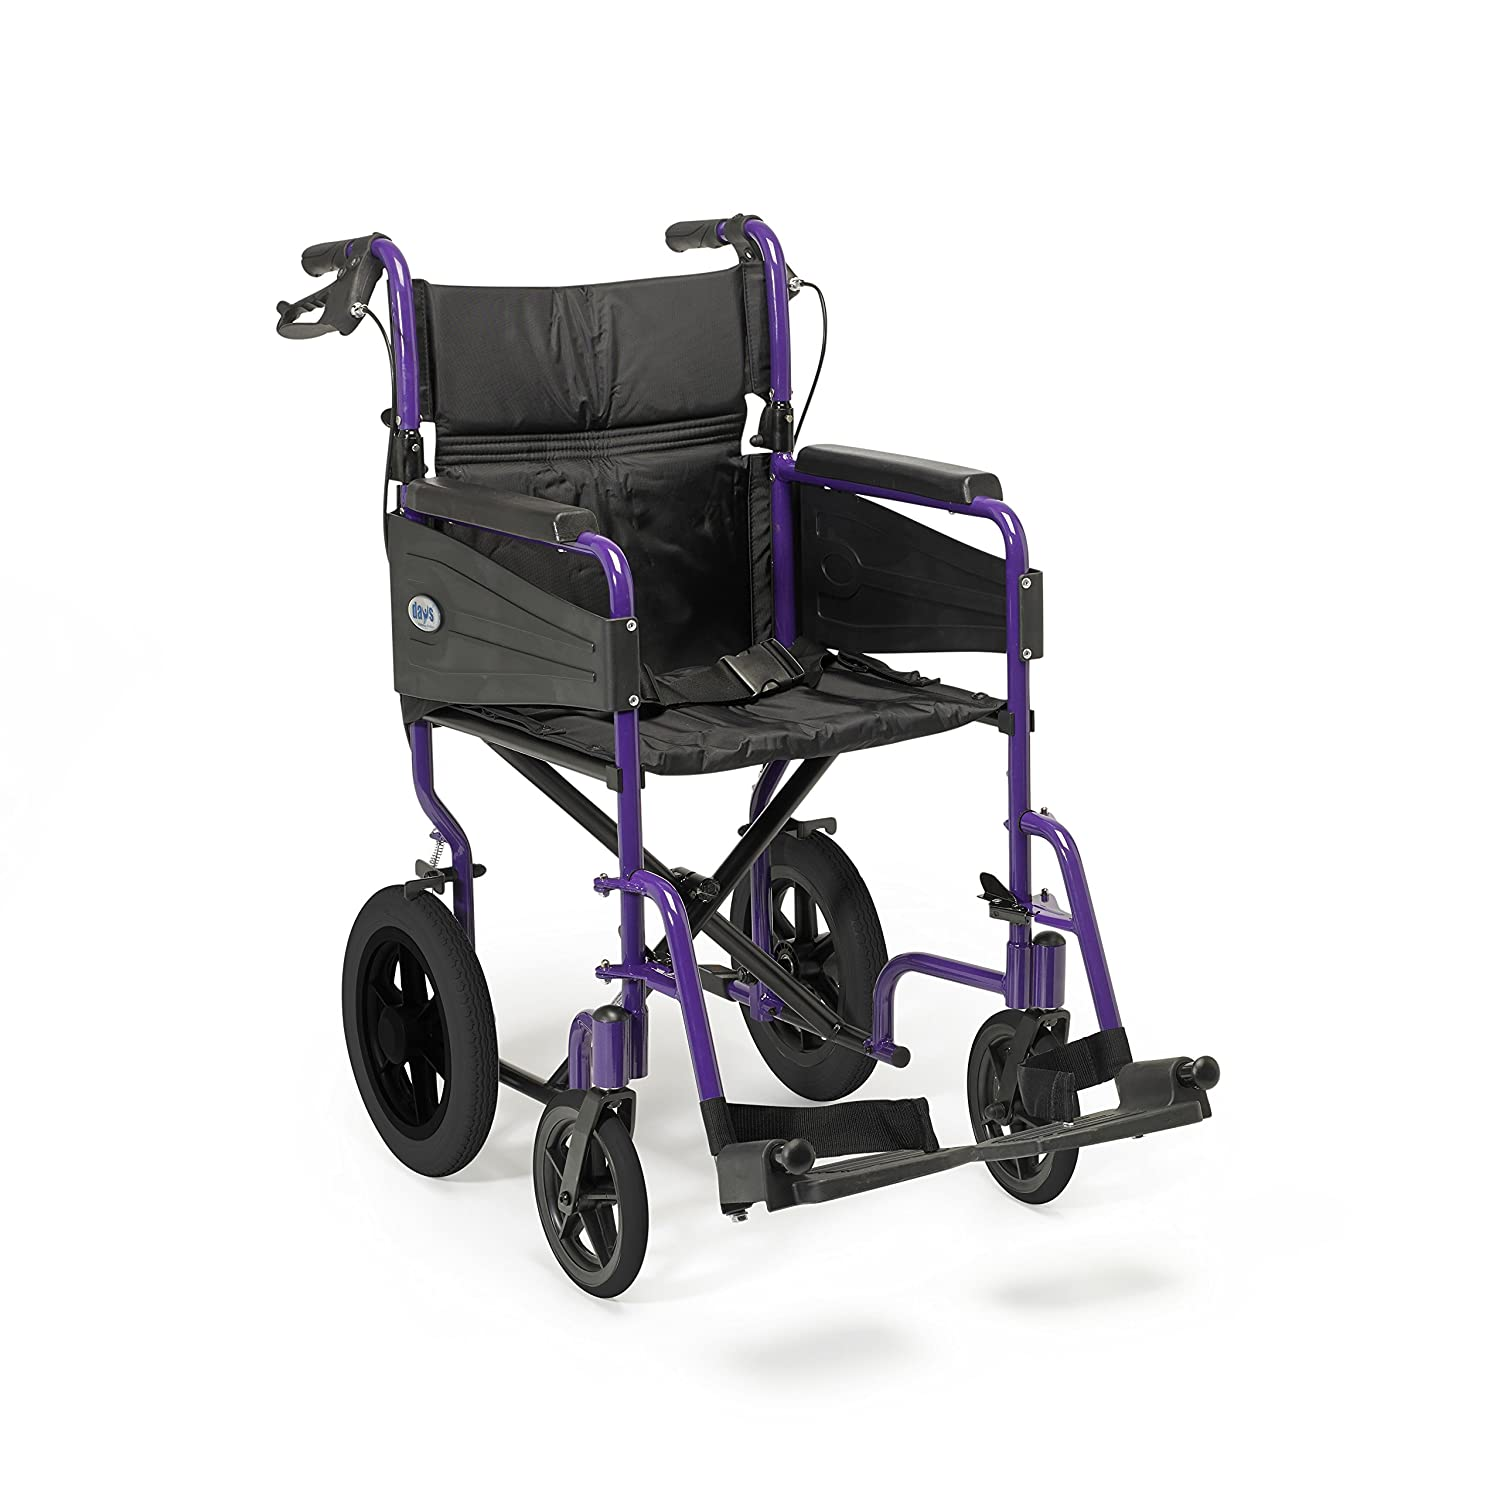 Patterson Medical Days Escape Lite Aluminium Wheelchair  sc 1 st  Theramedic & Best Lightweight Manual Wheelchairs in UK 2018